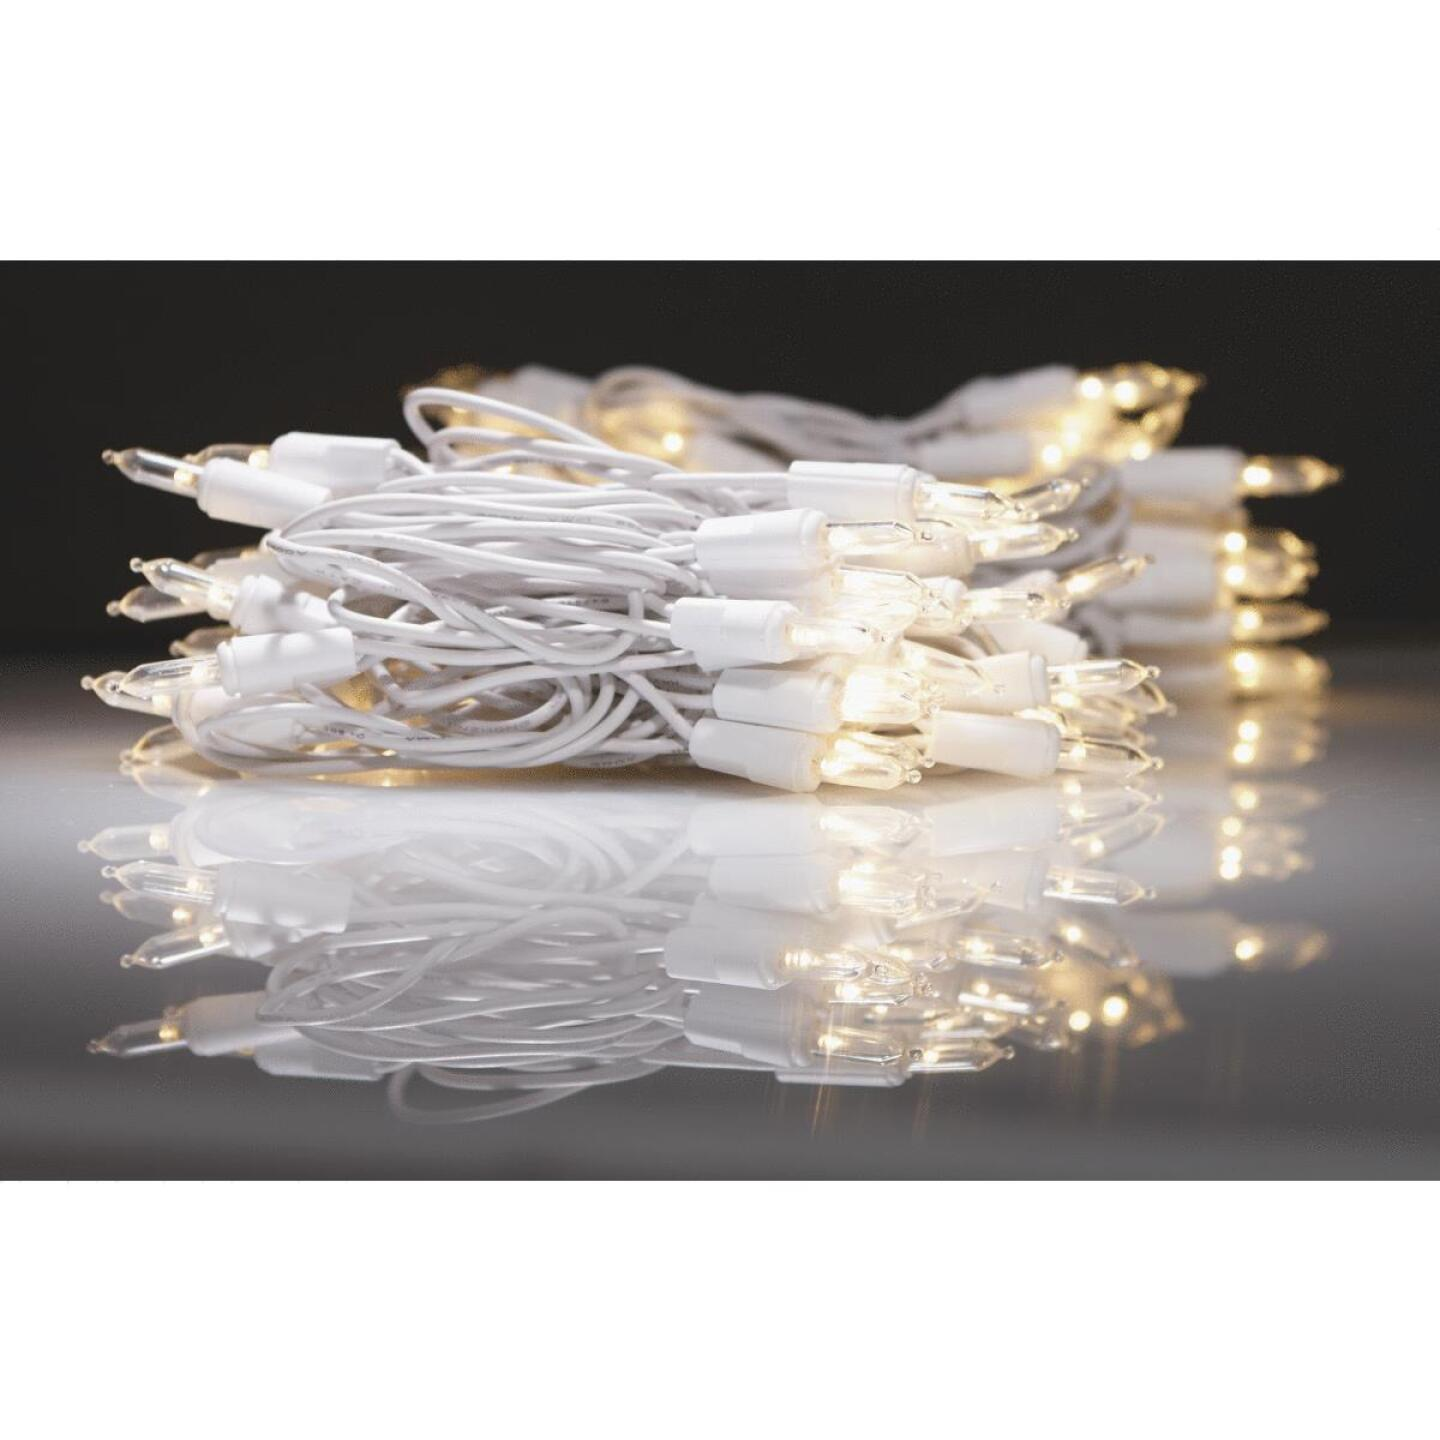 J Hofert White 100-Bulb Italian Style LED Light Set with White Wire Image 2